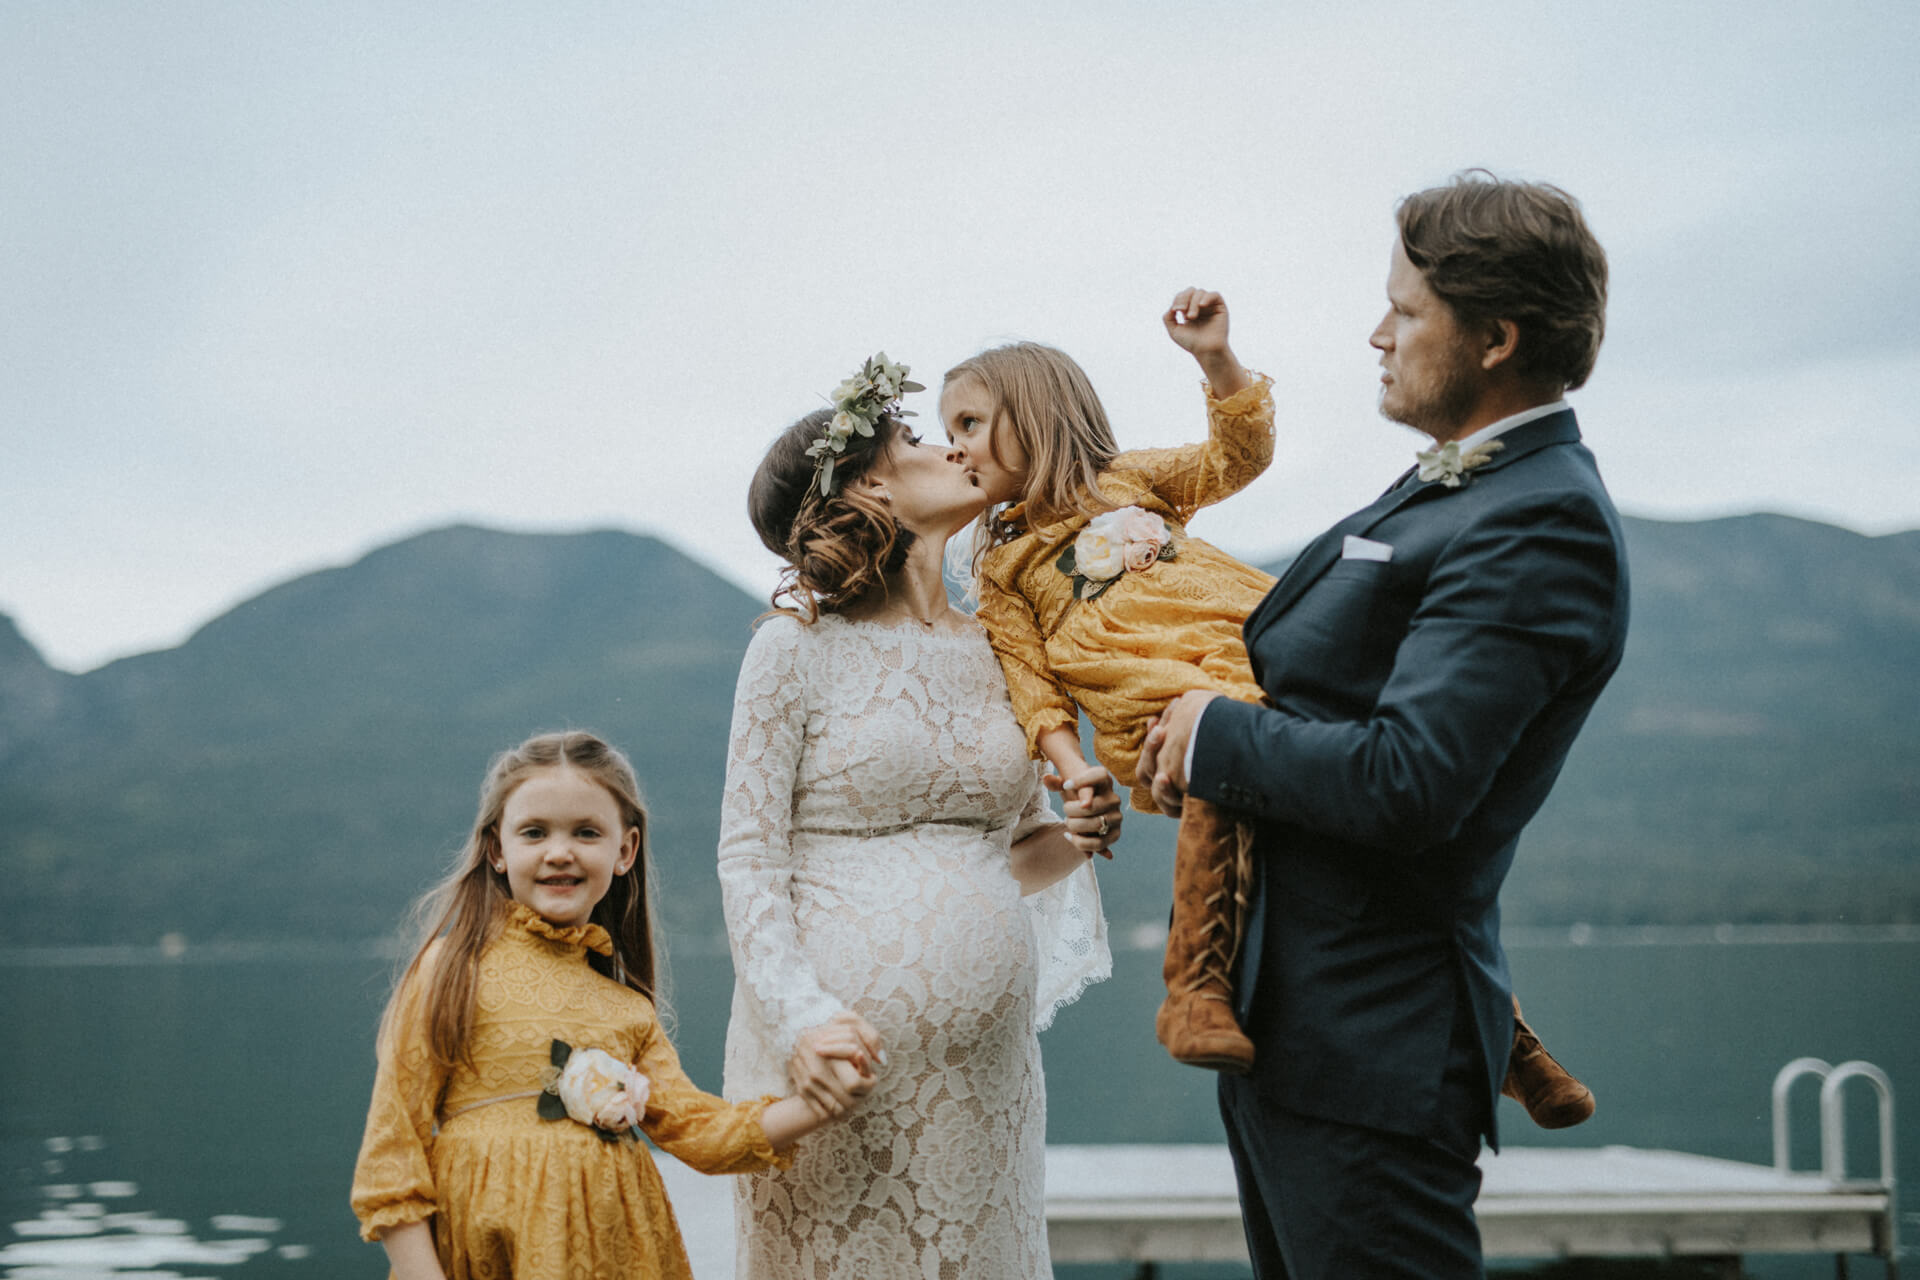 Family Portrait at a wedding in Clear Lake, Iowa